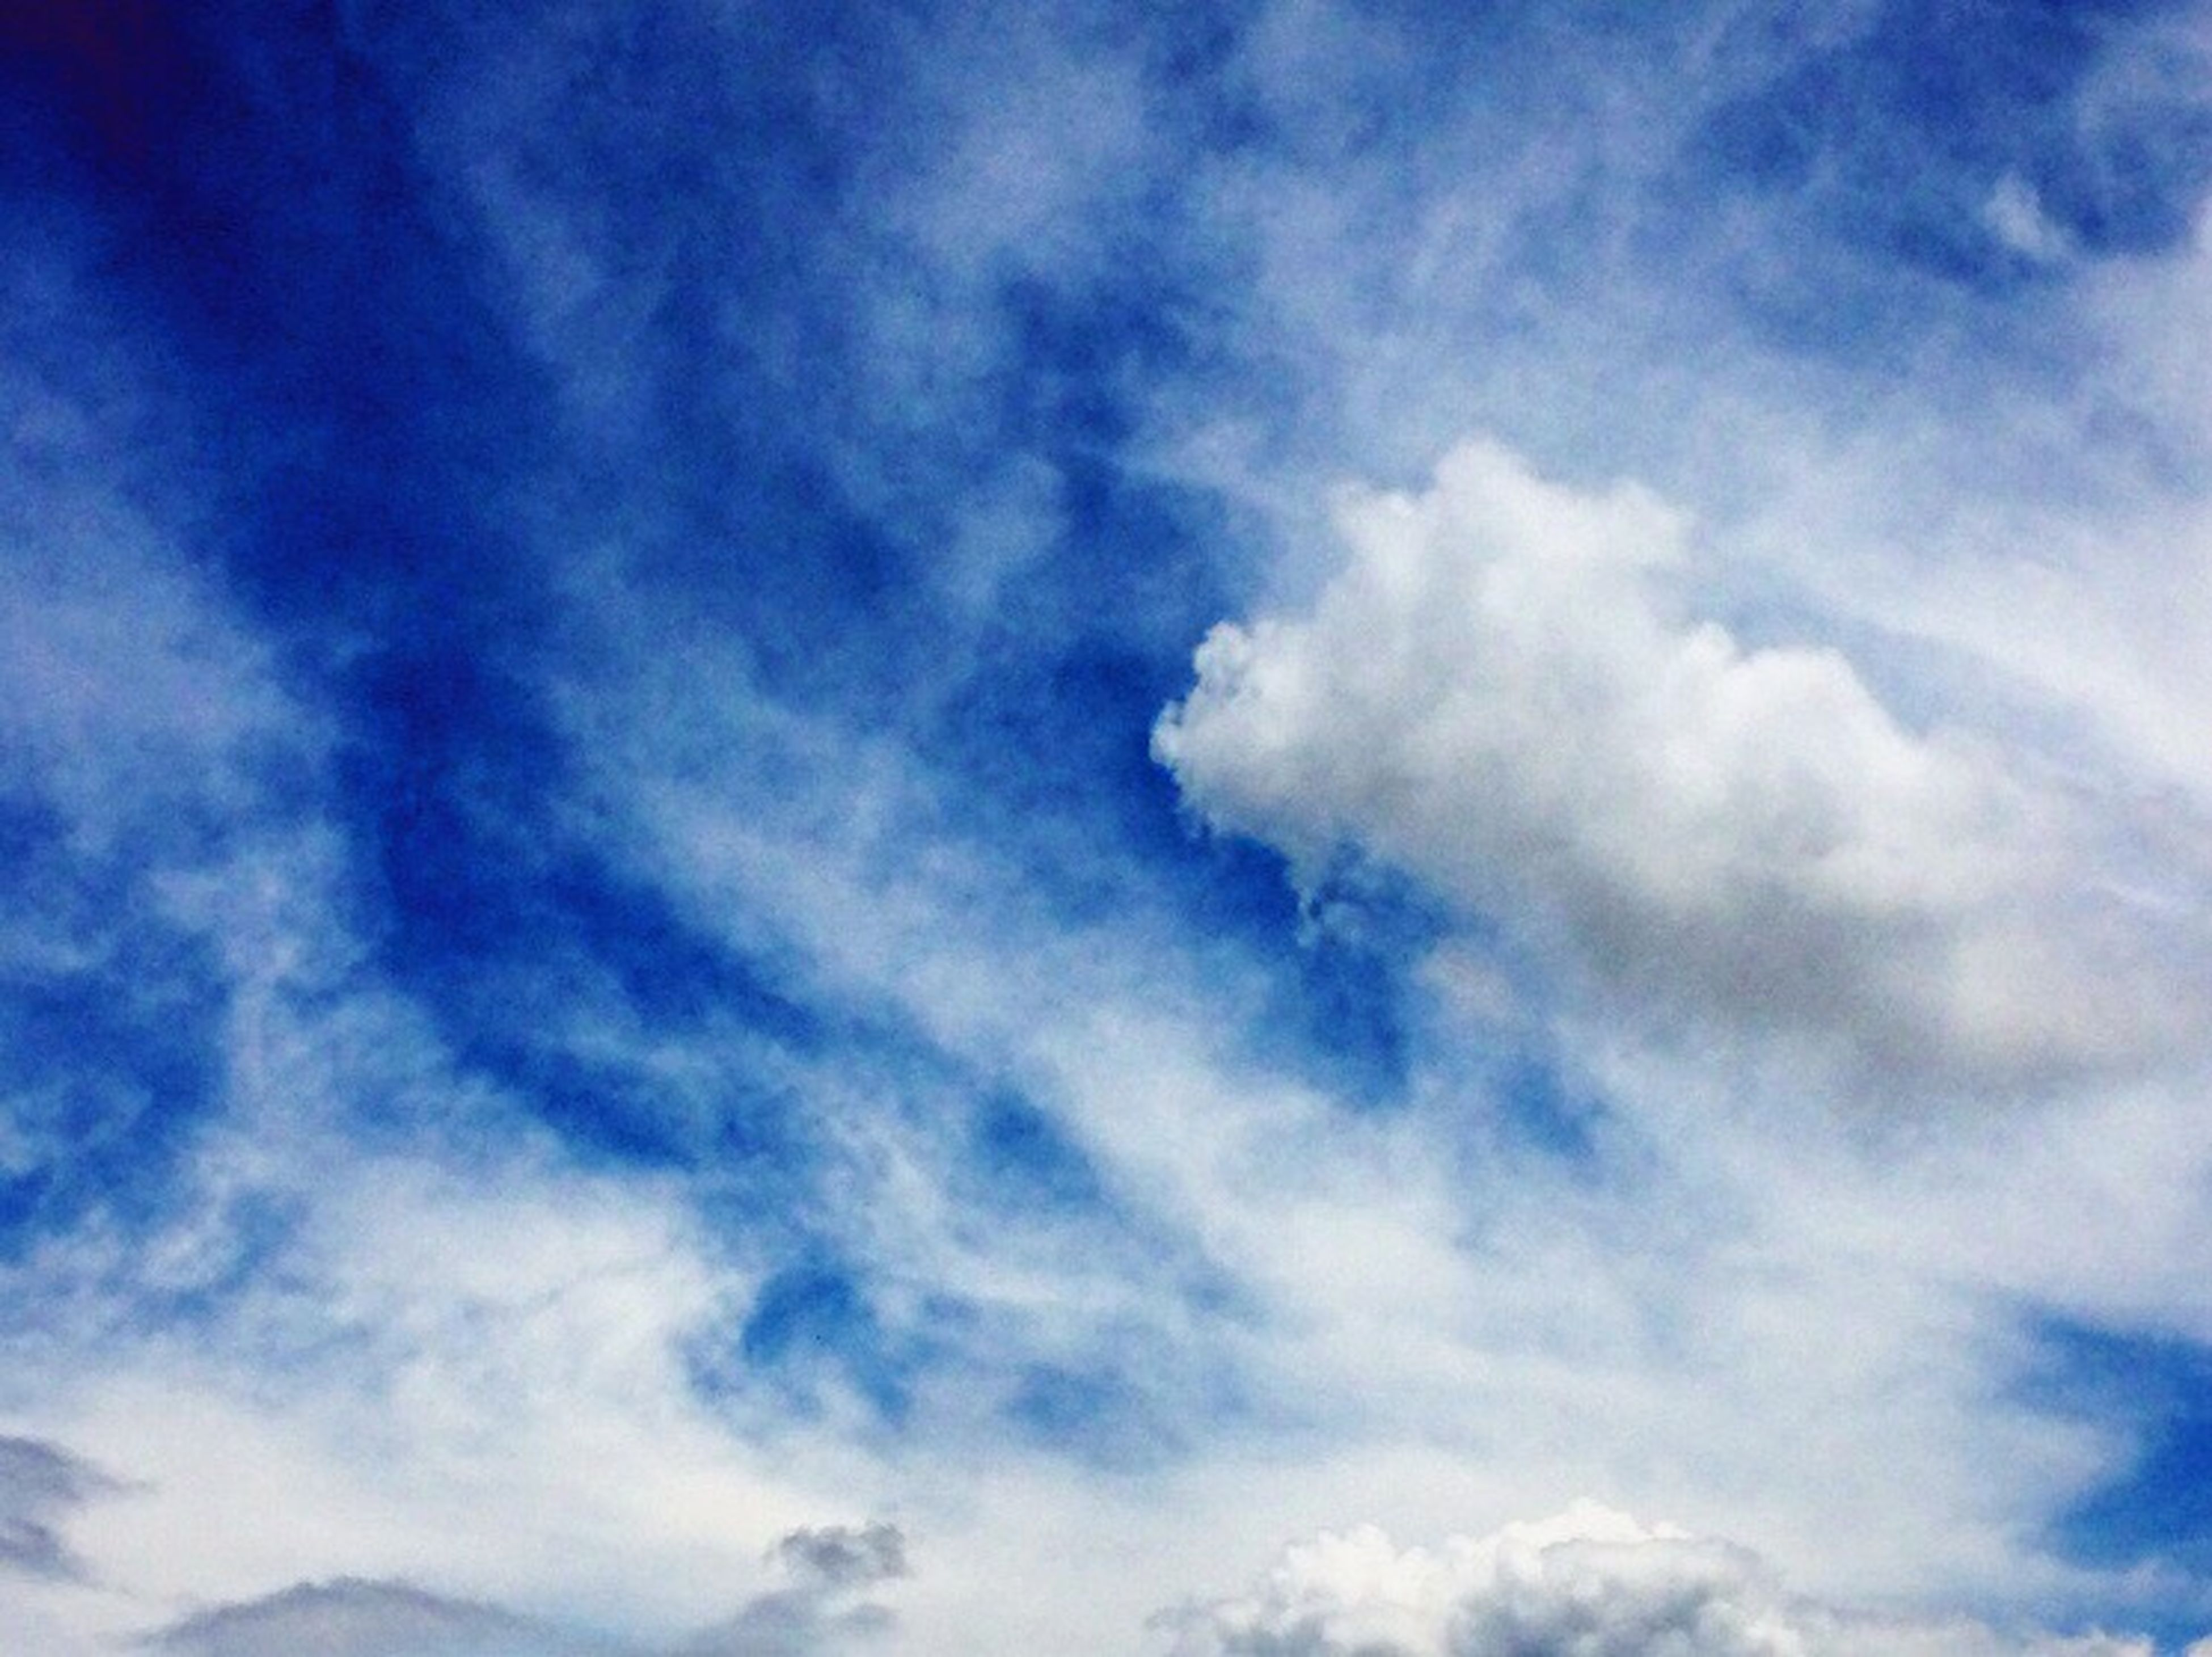 low angle view, sky, blue, cloud - sky, sky only, beauty in nature, tranquility, nature, scenics, cloudy, cloud, cloudscape, backgrounds, white color, tranquil scene, outdoors, day, no people, full frame, idyllic